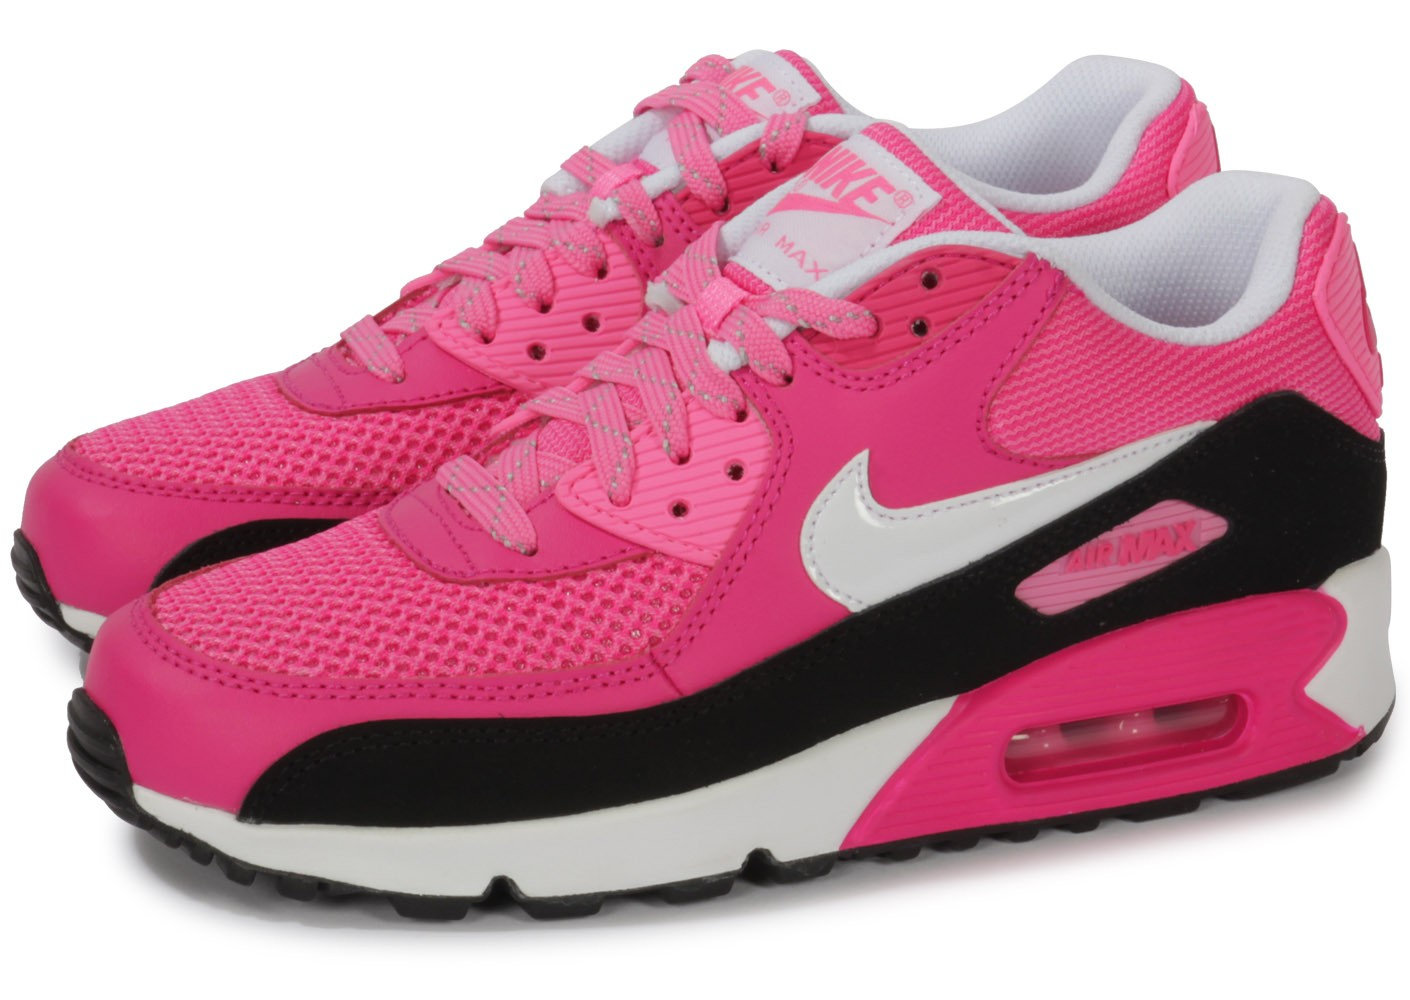 site réputé b0058 f4250 norway femmes nike light up rose d7ca4 93e5a